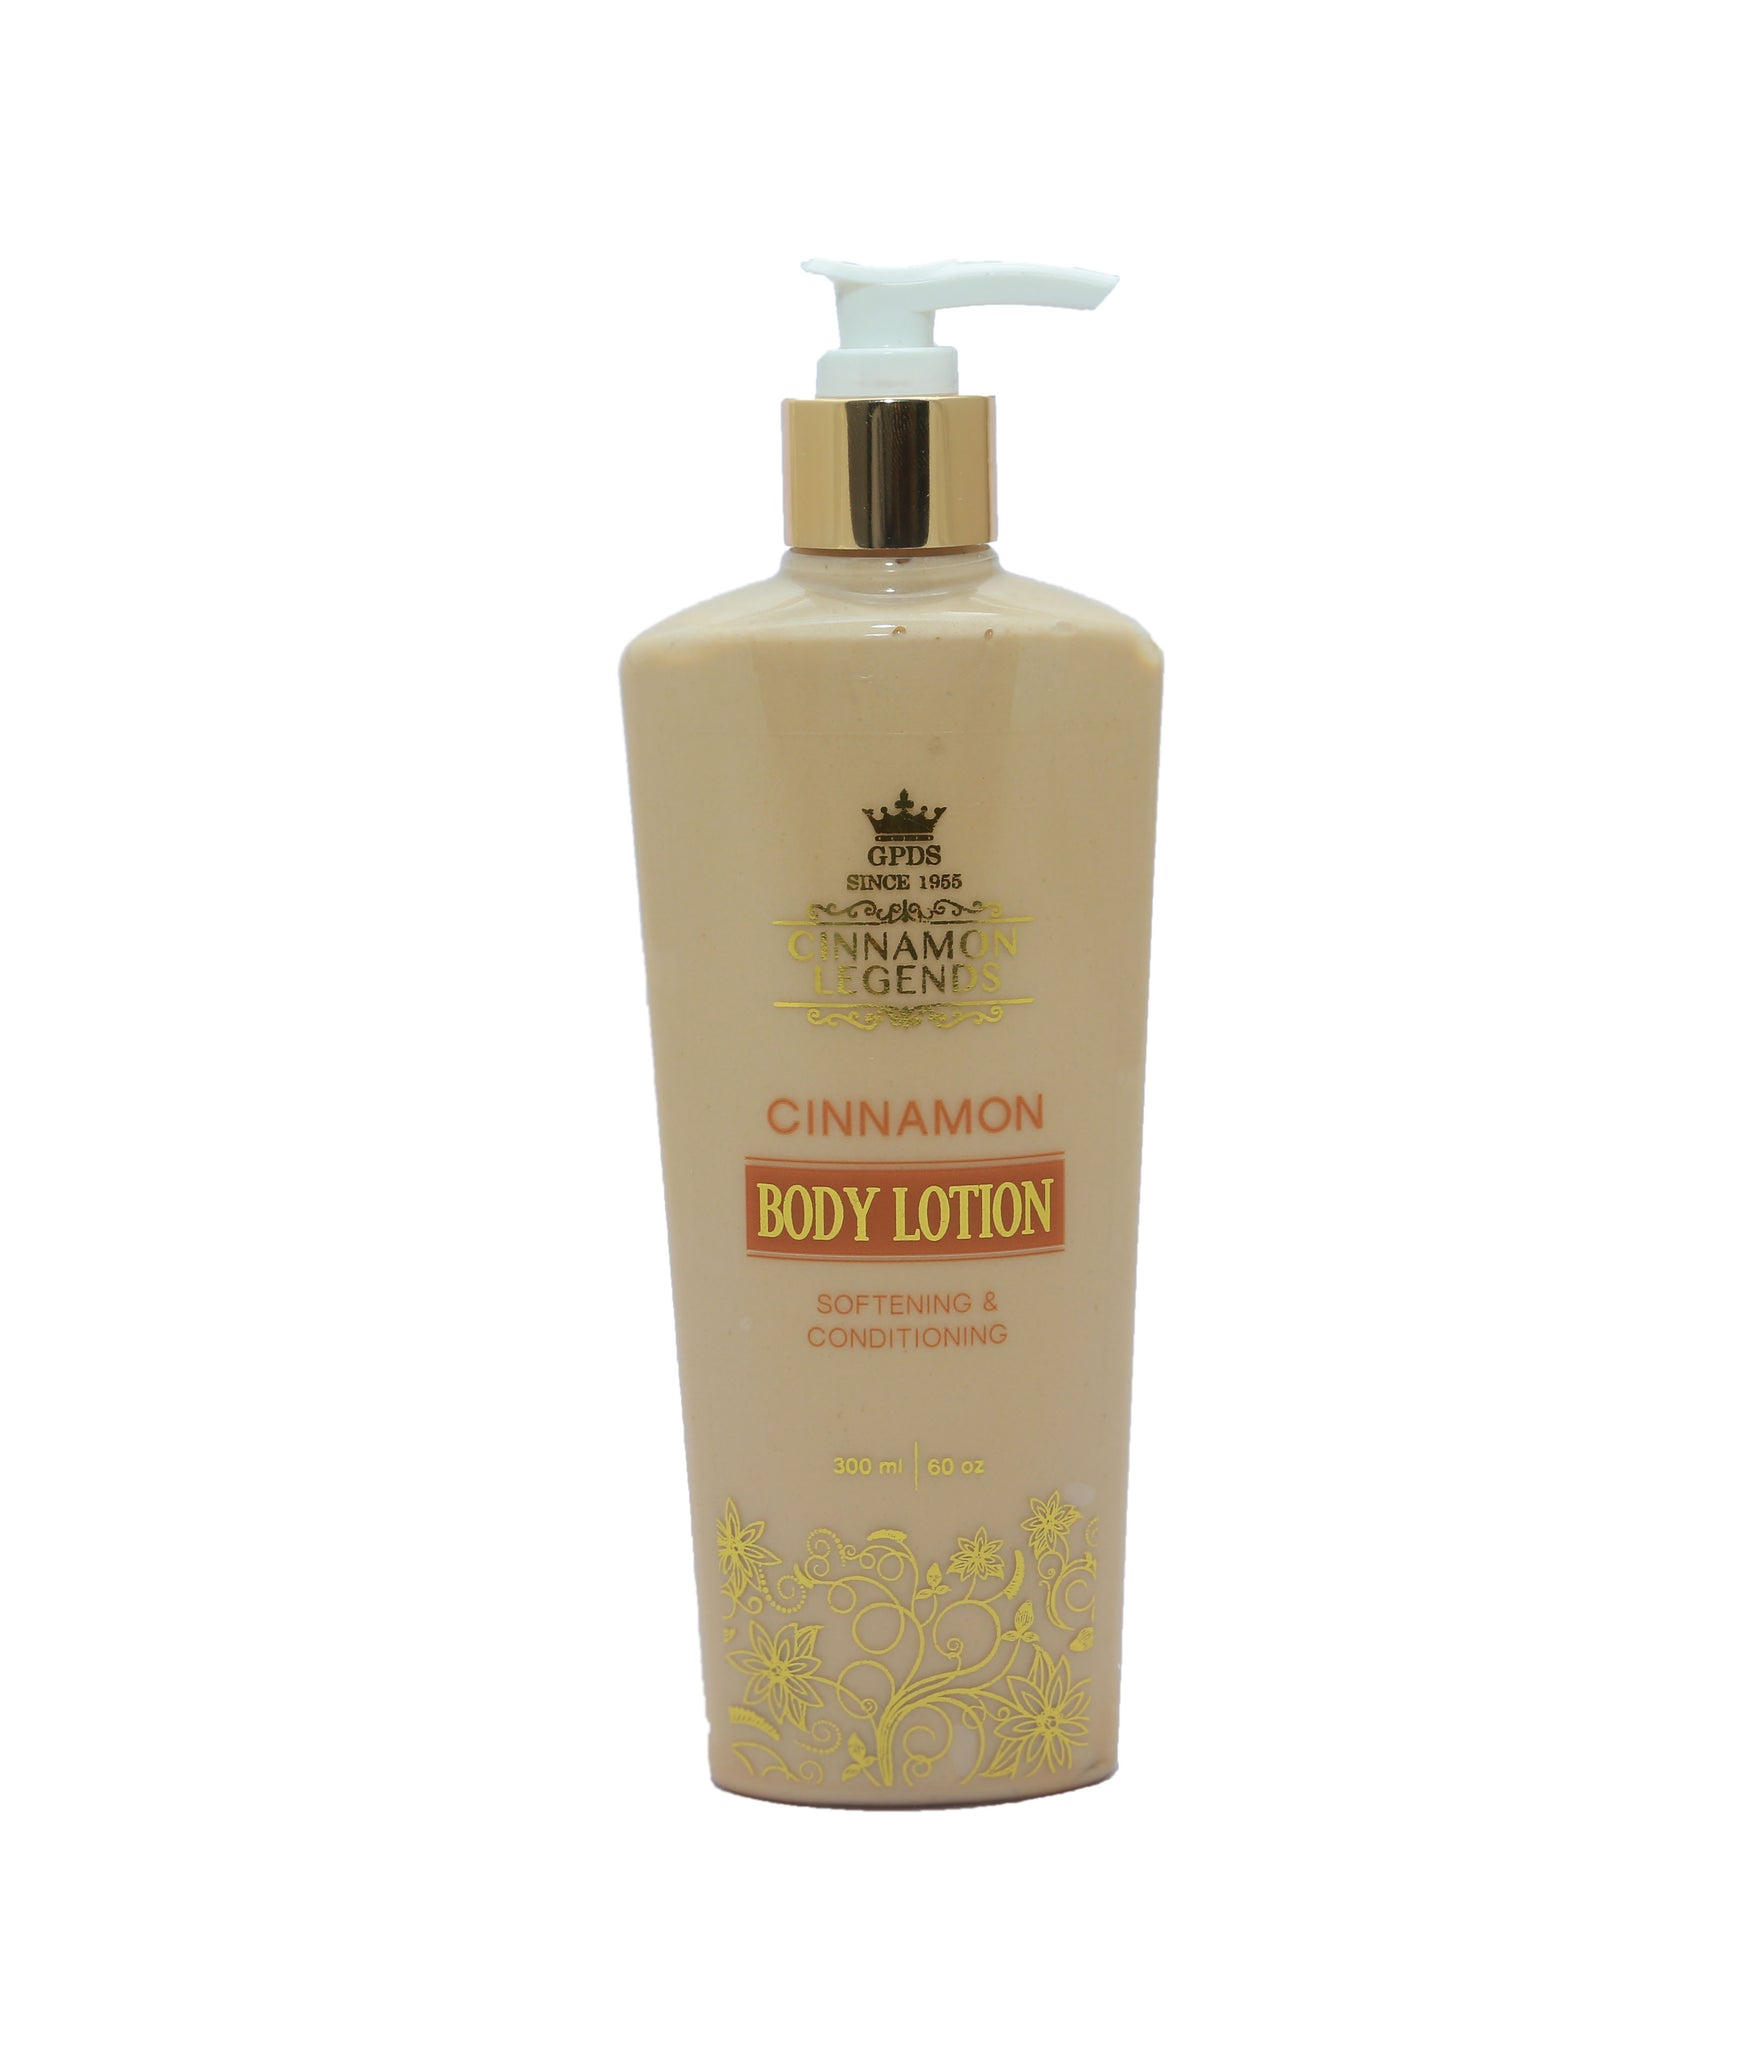 Cinnamon Body Lotion – 300ml